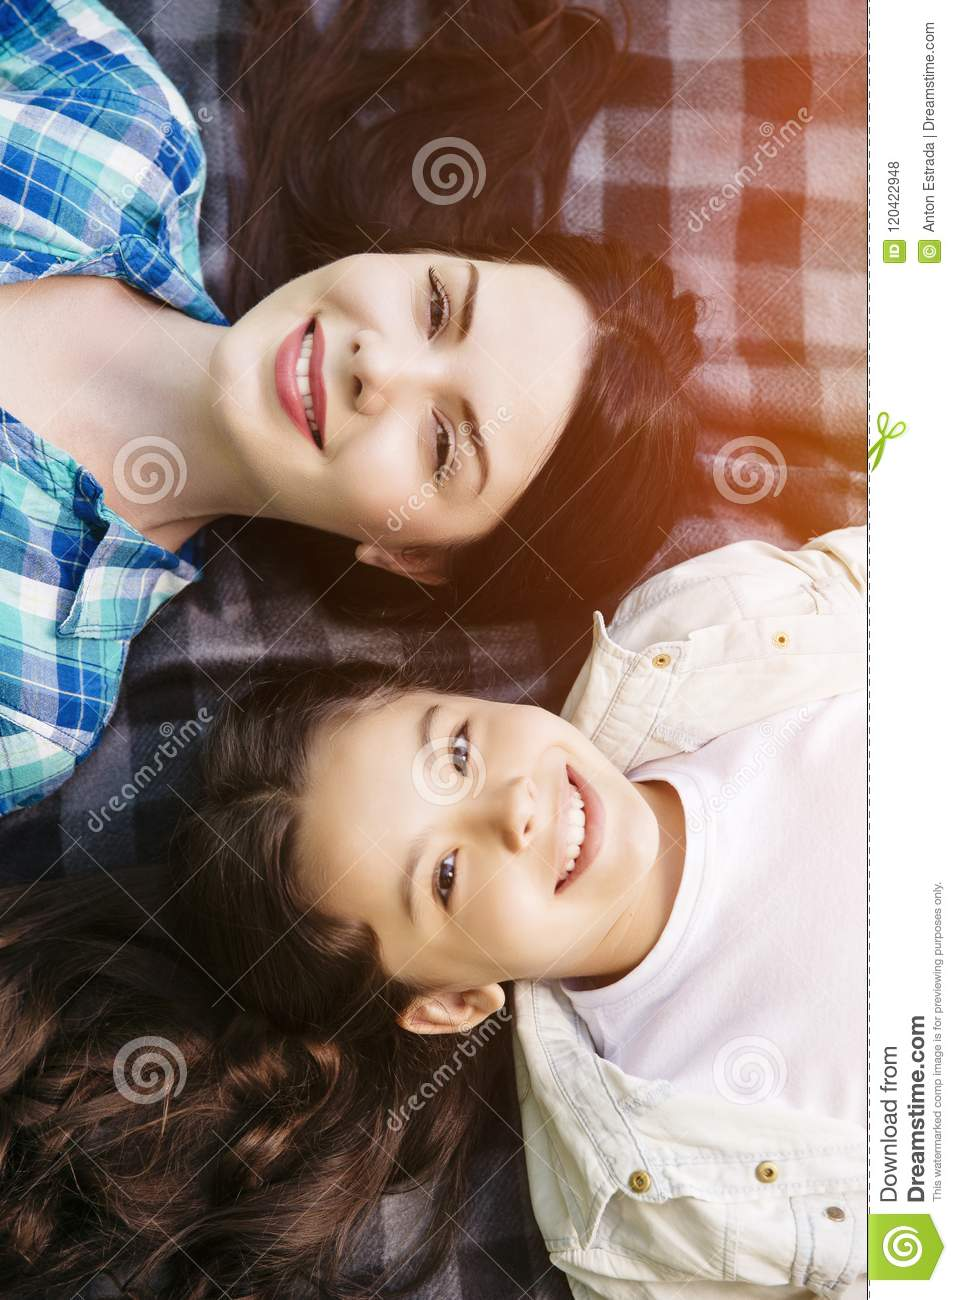 Vertical portrait of young woman and girl lying on blanket and looking on camera. They are smiling. Girls are beautiful